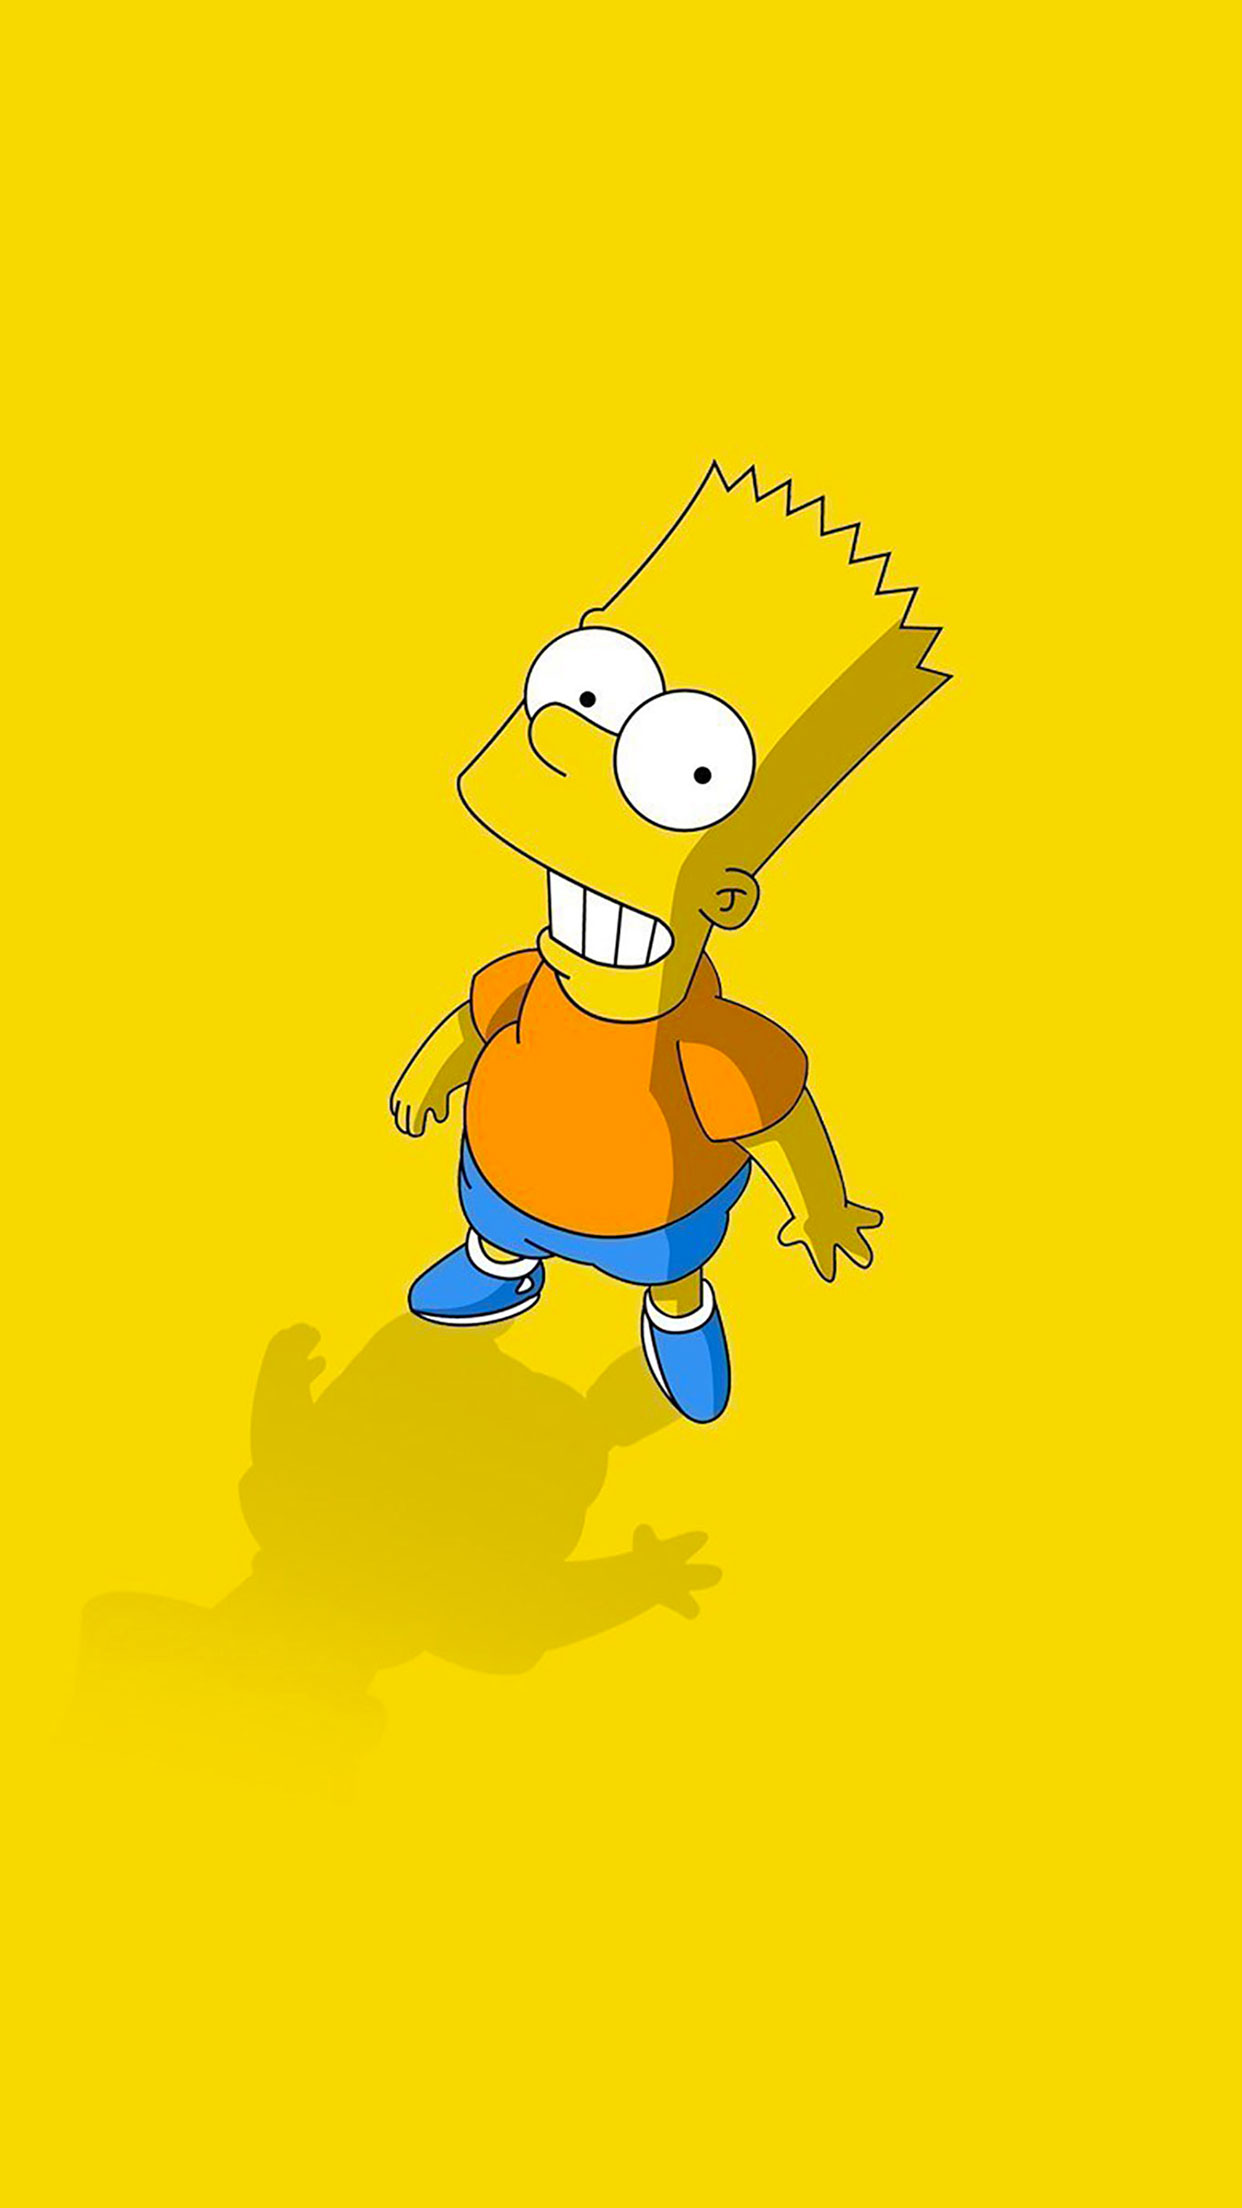 Hd Ipad Retina Wallpapers Simpsons Bart Wallpaper For Iphone X 8 7 6 Free